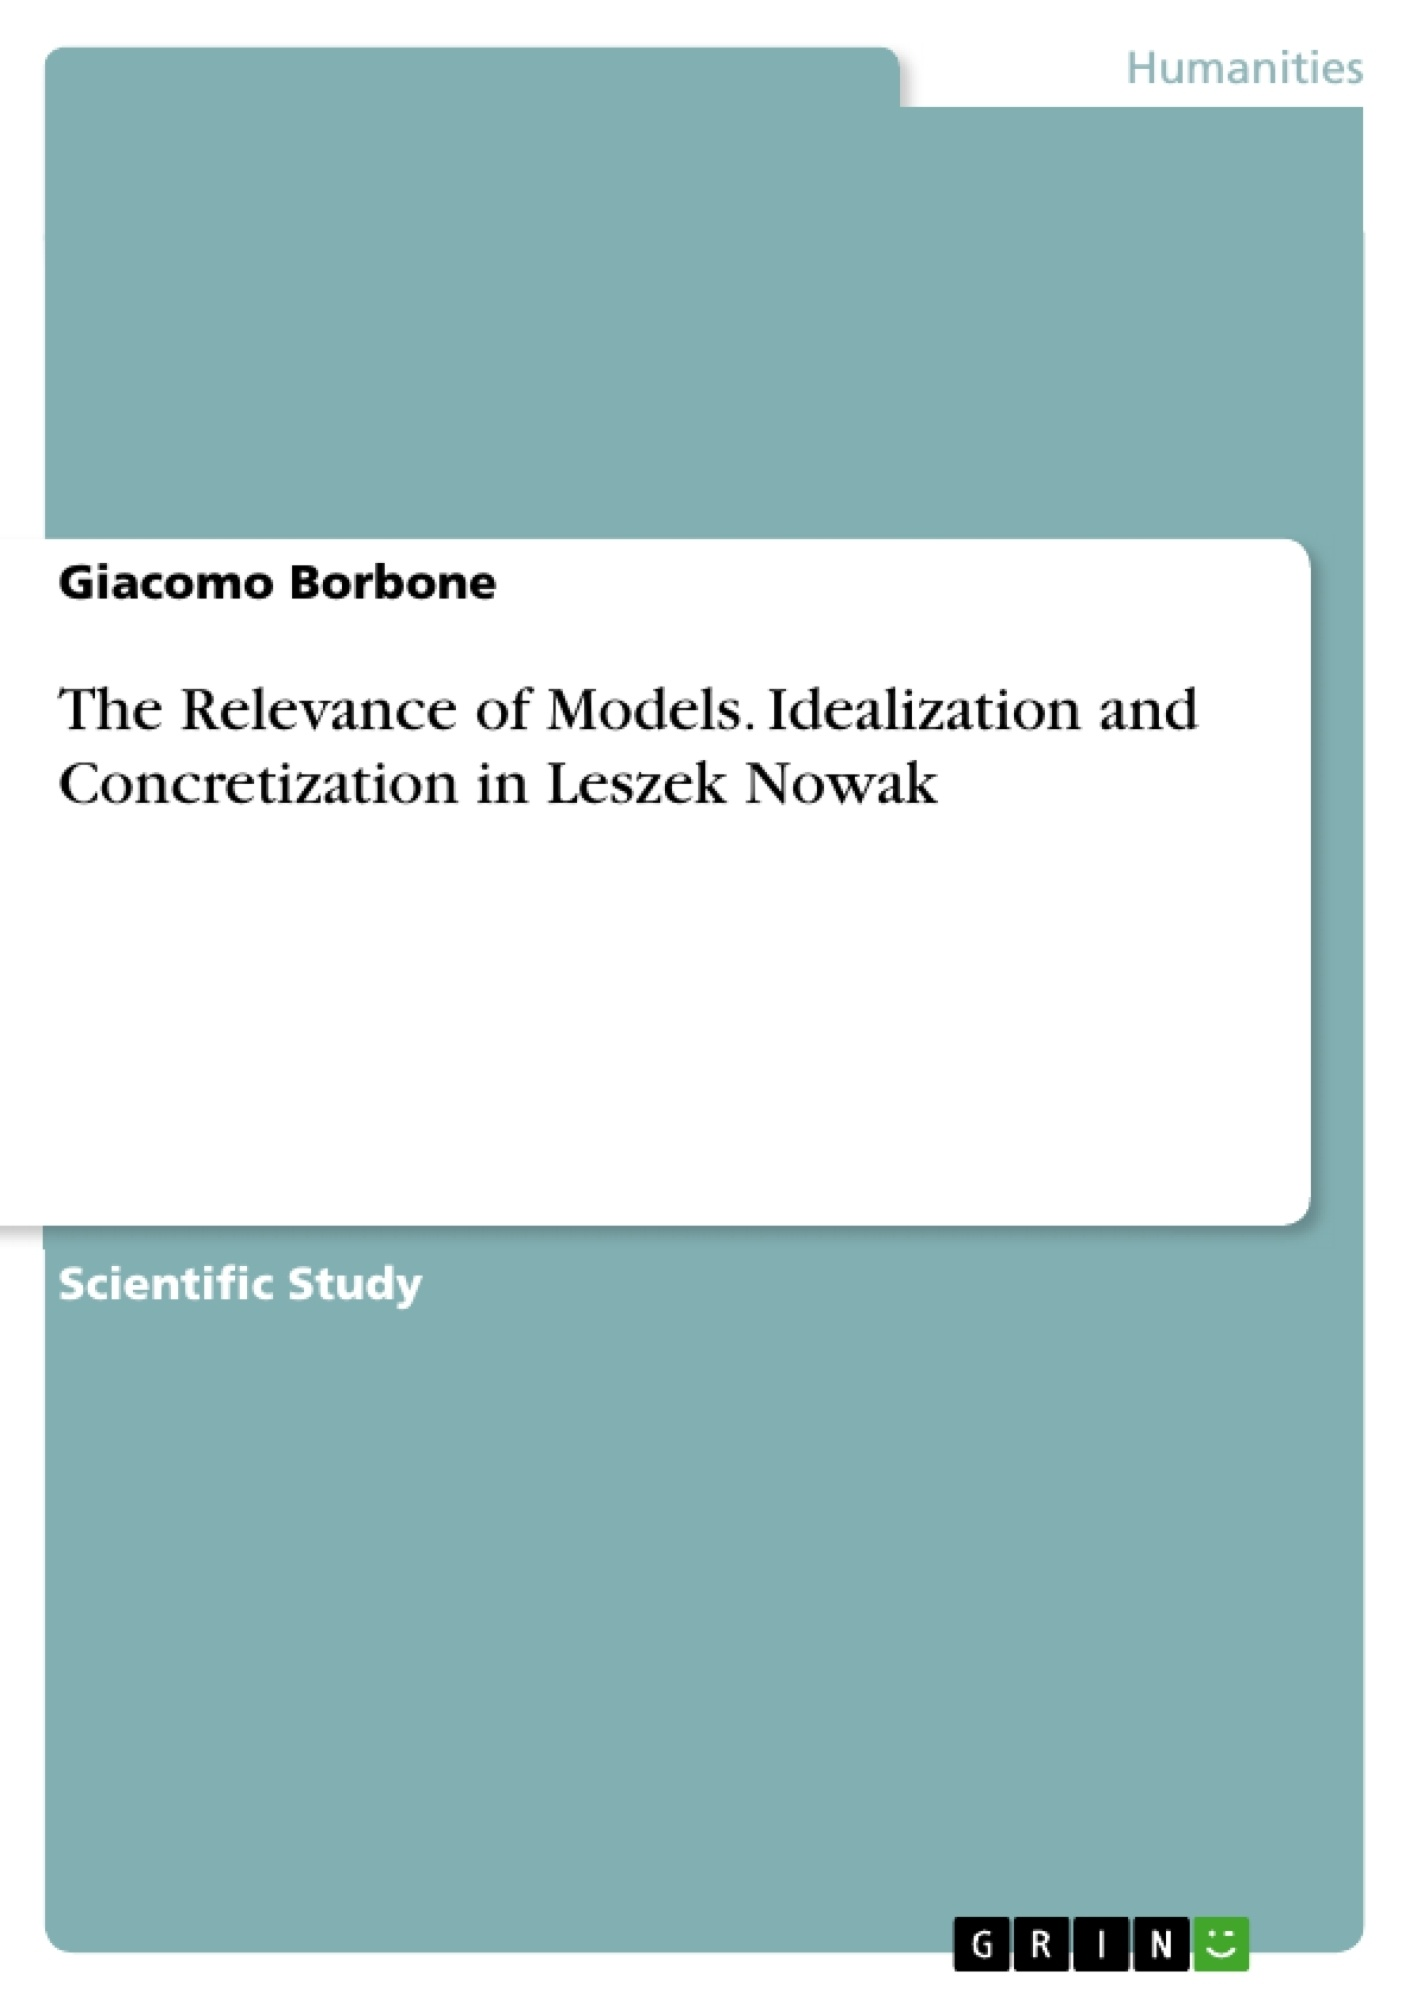 Title: The Relevance of Models. Idealization and Concretization in Leszek Nowak